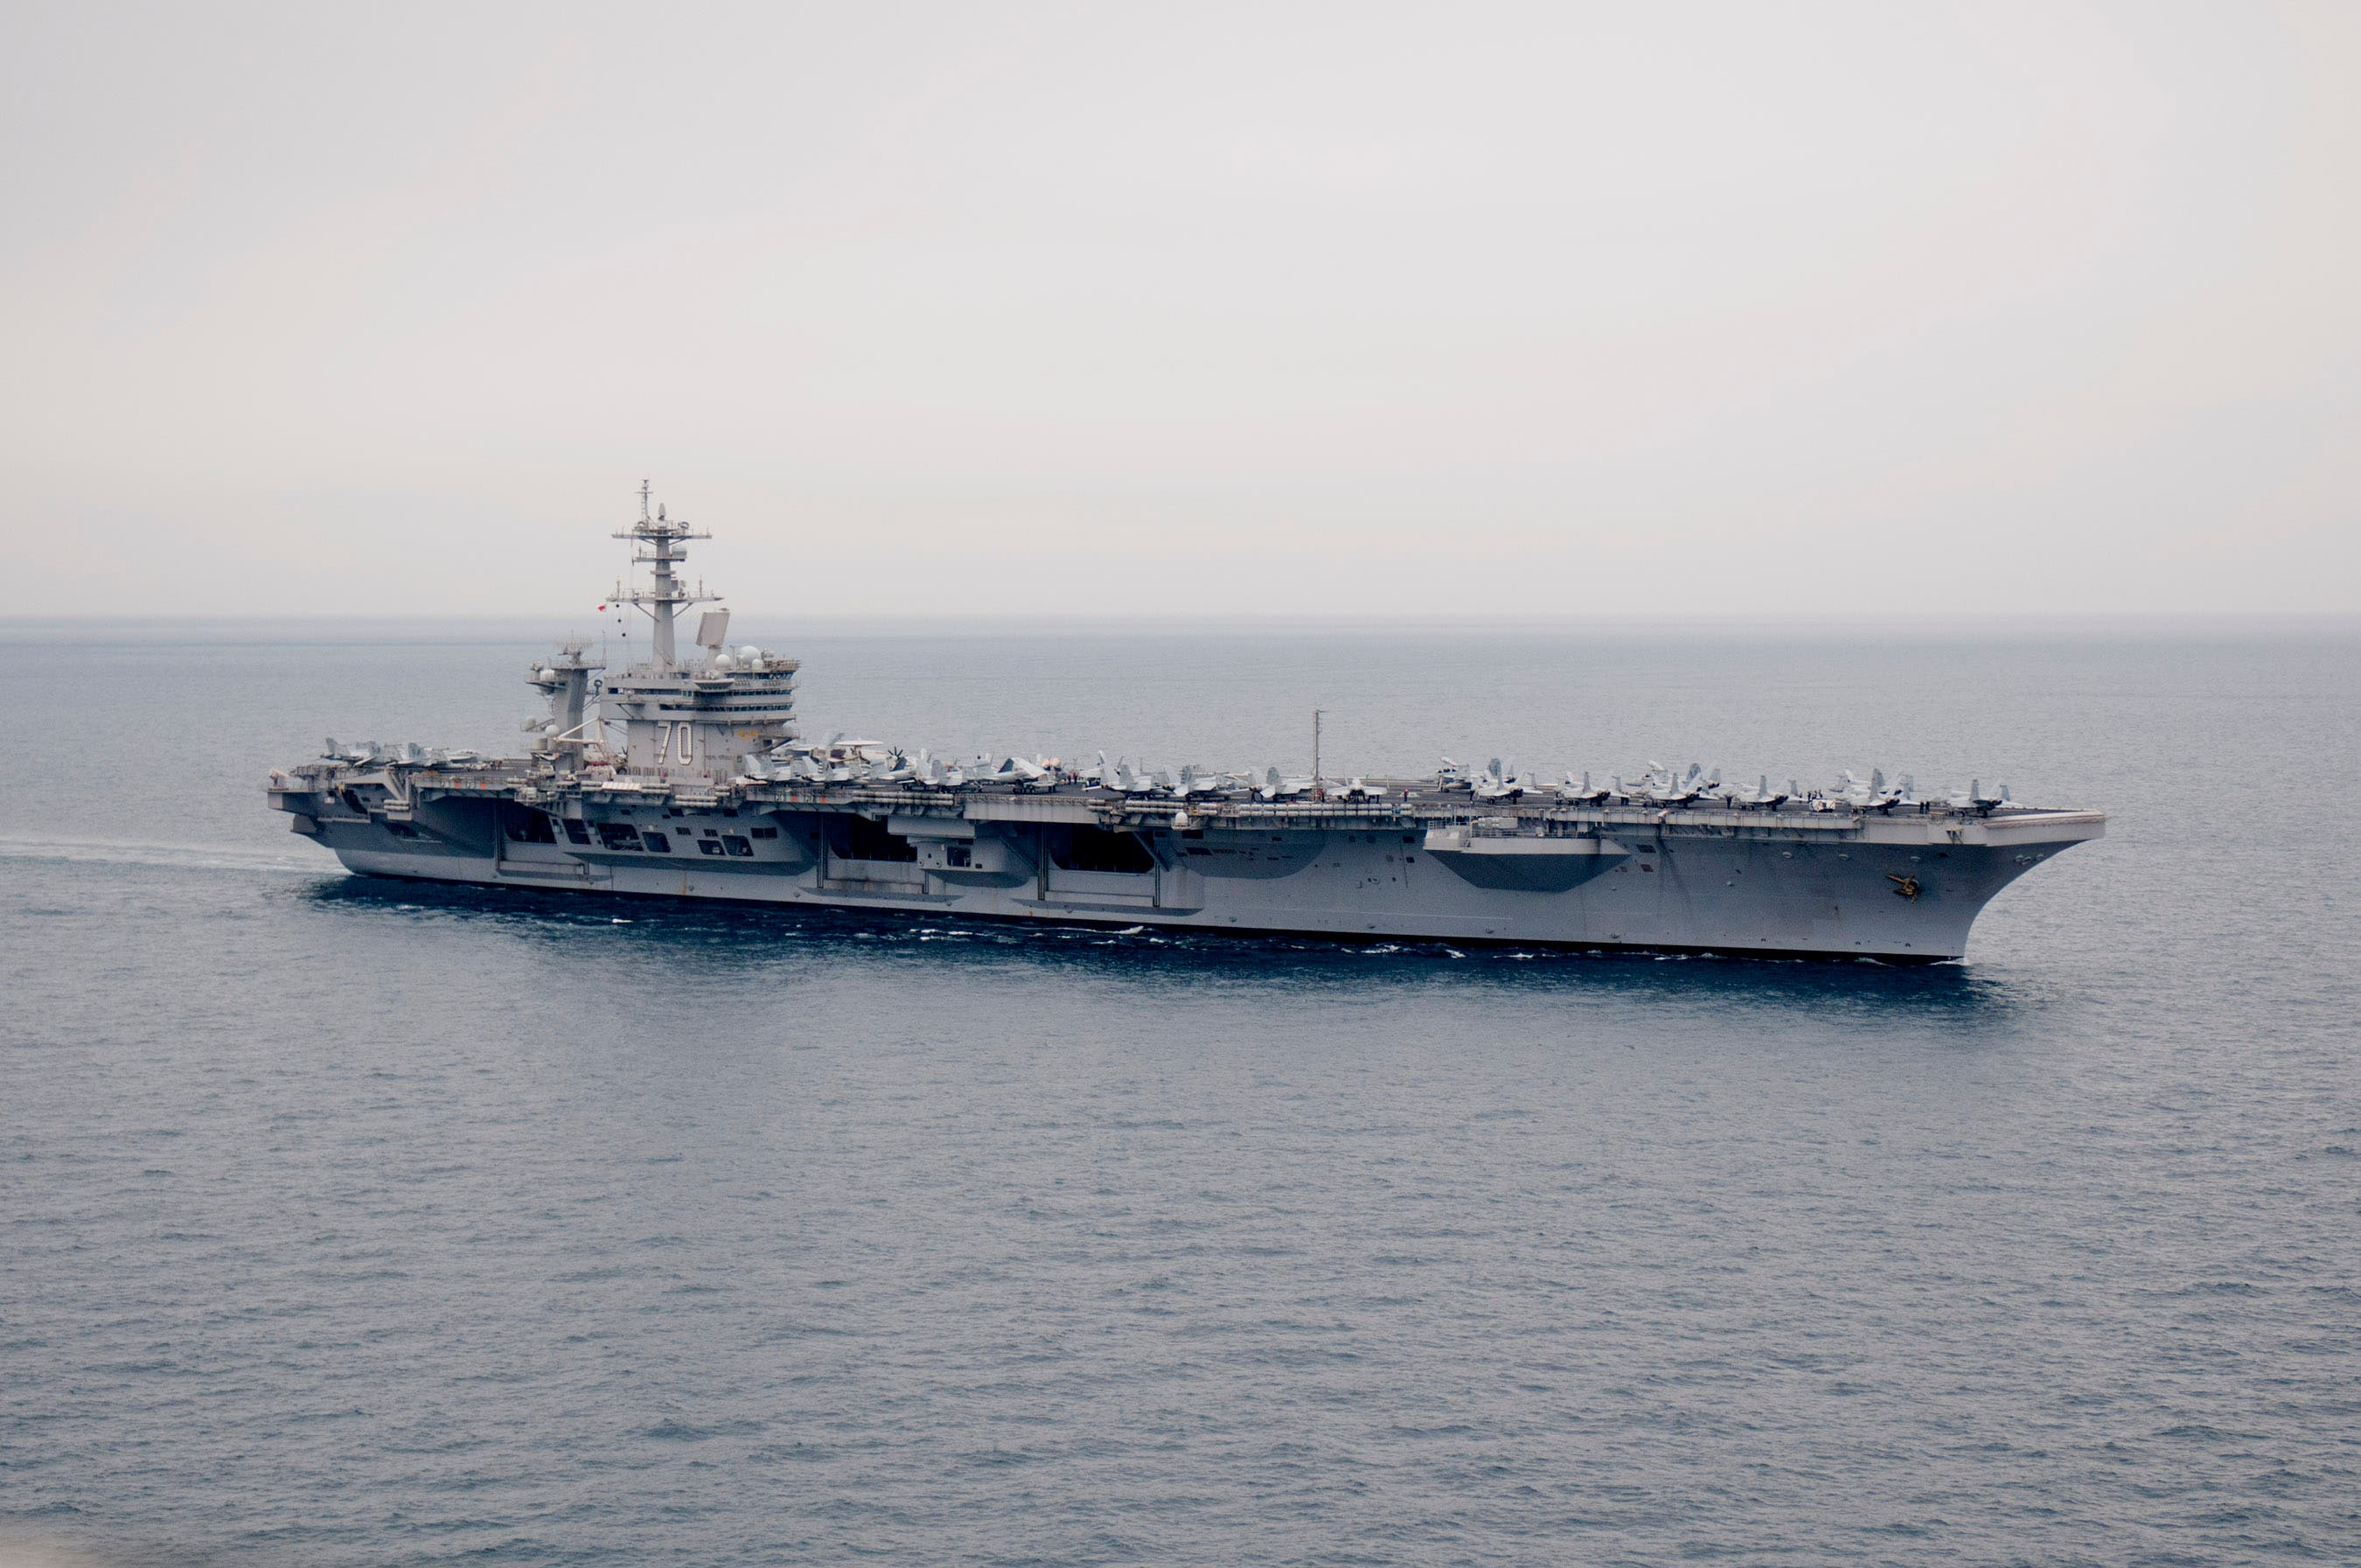 The Nimitz-class aircraft carrier U.S.S. Abraham Lincoln in April 2012.  Iran has reportedly built a mock-up in one of its shipyards. (reuters)